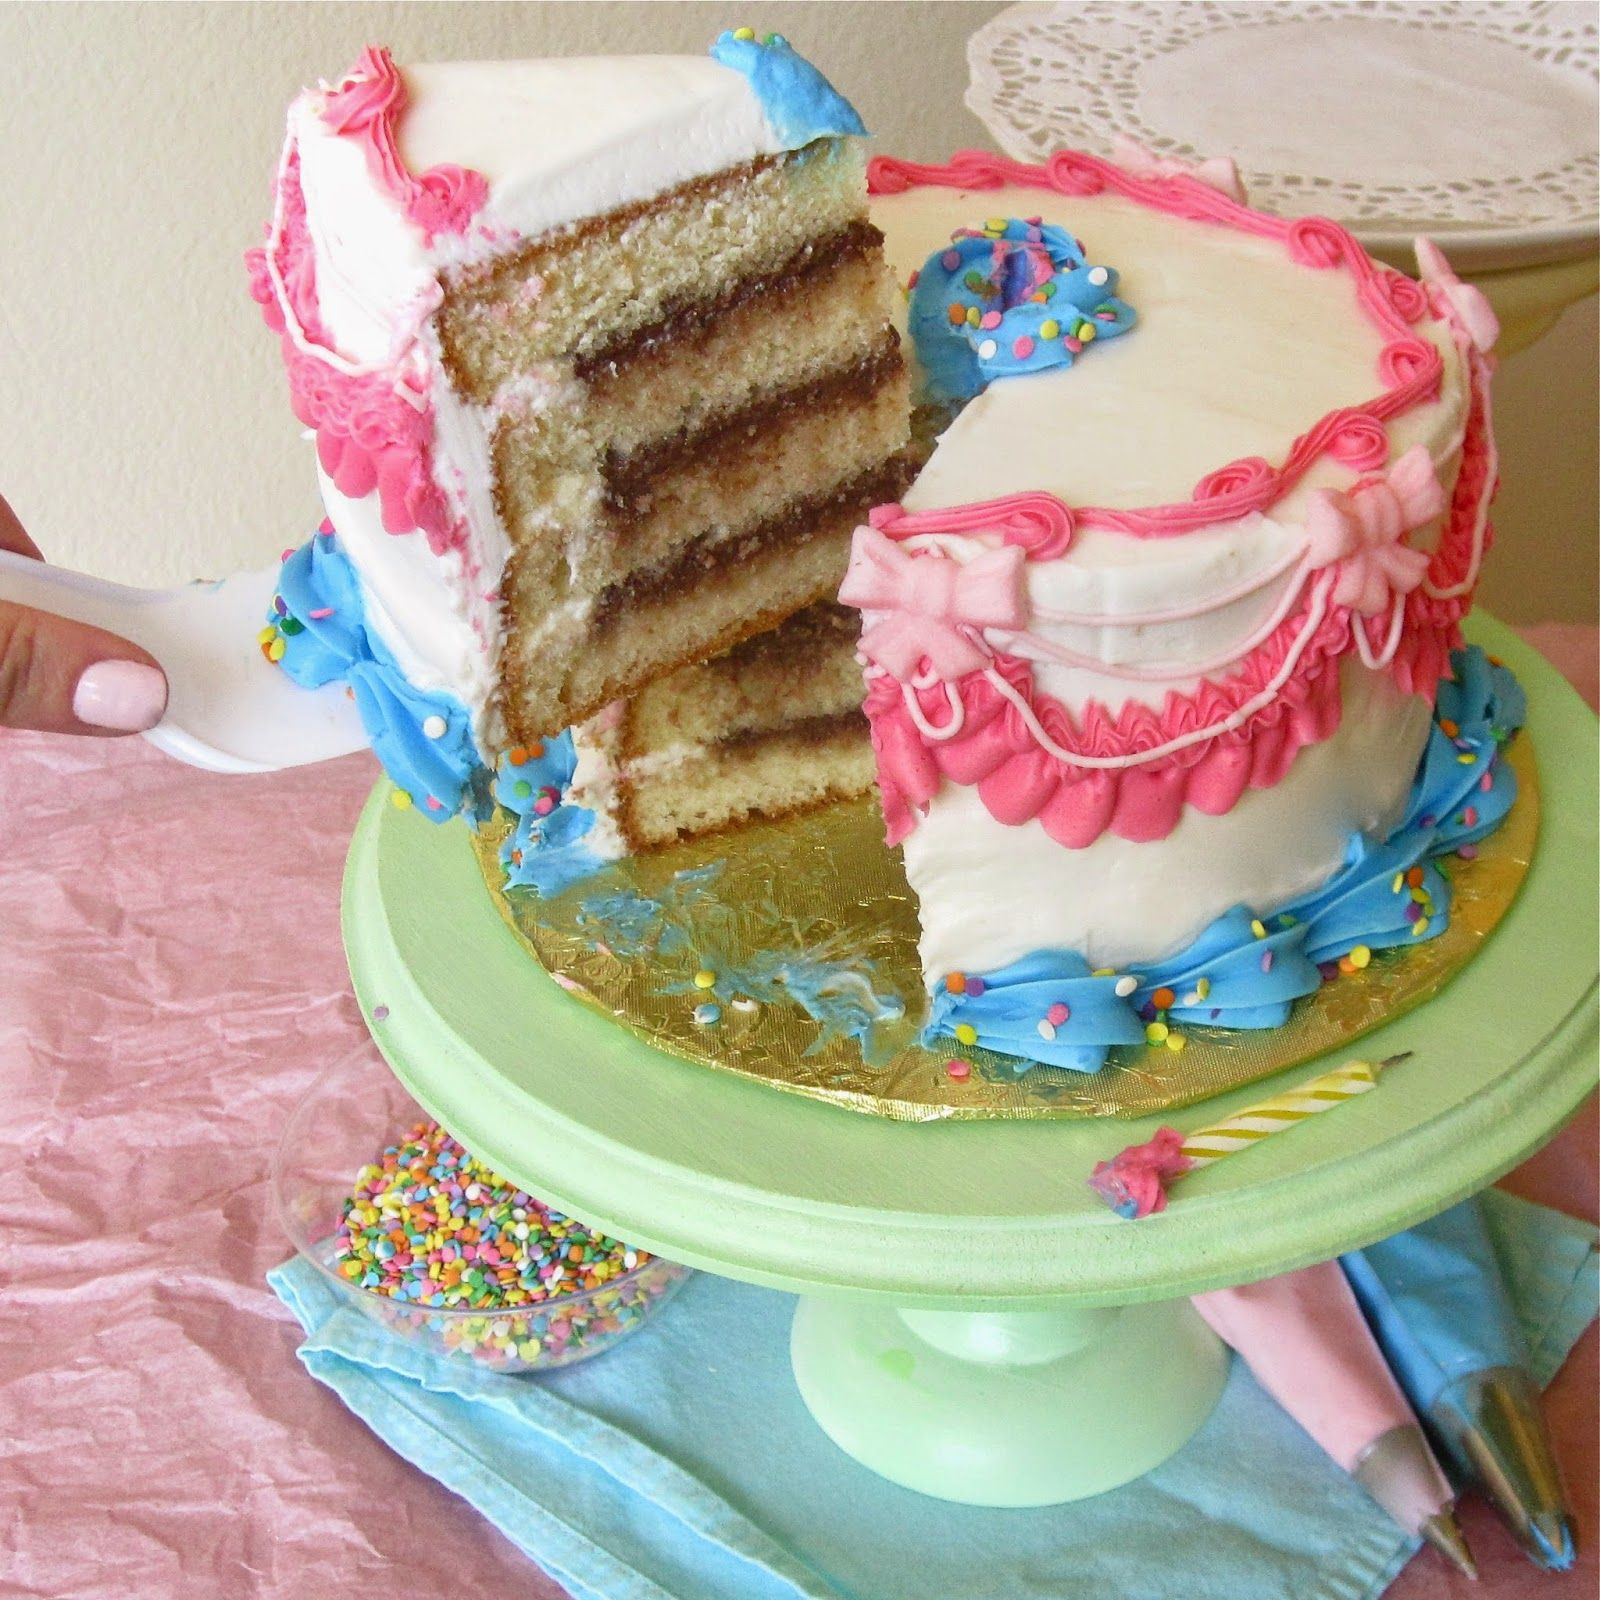 Lindsay Ann Bakes: {VIDEO} Cake Decorating 101 (Part 1): How to Level, Tort, Fill & Stack a Layer Cake